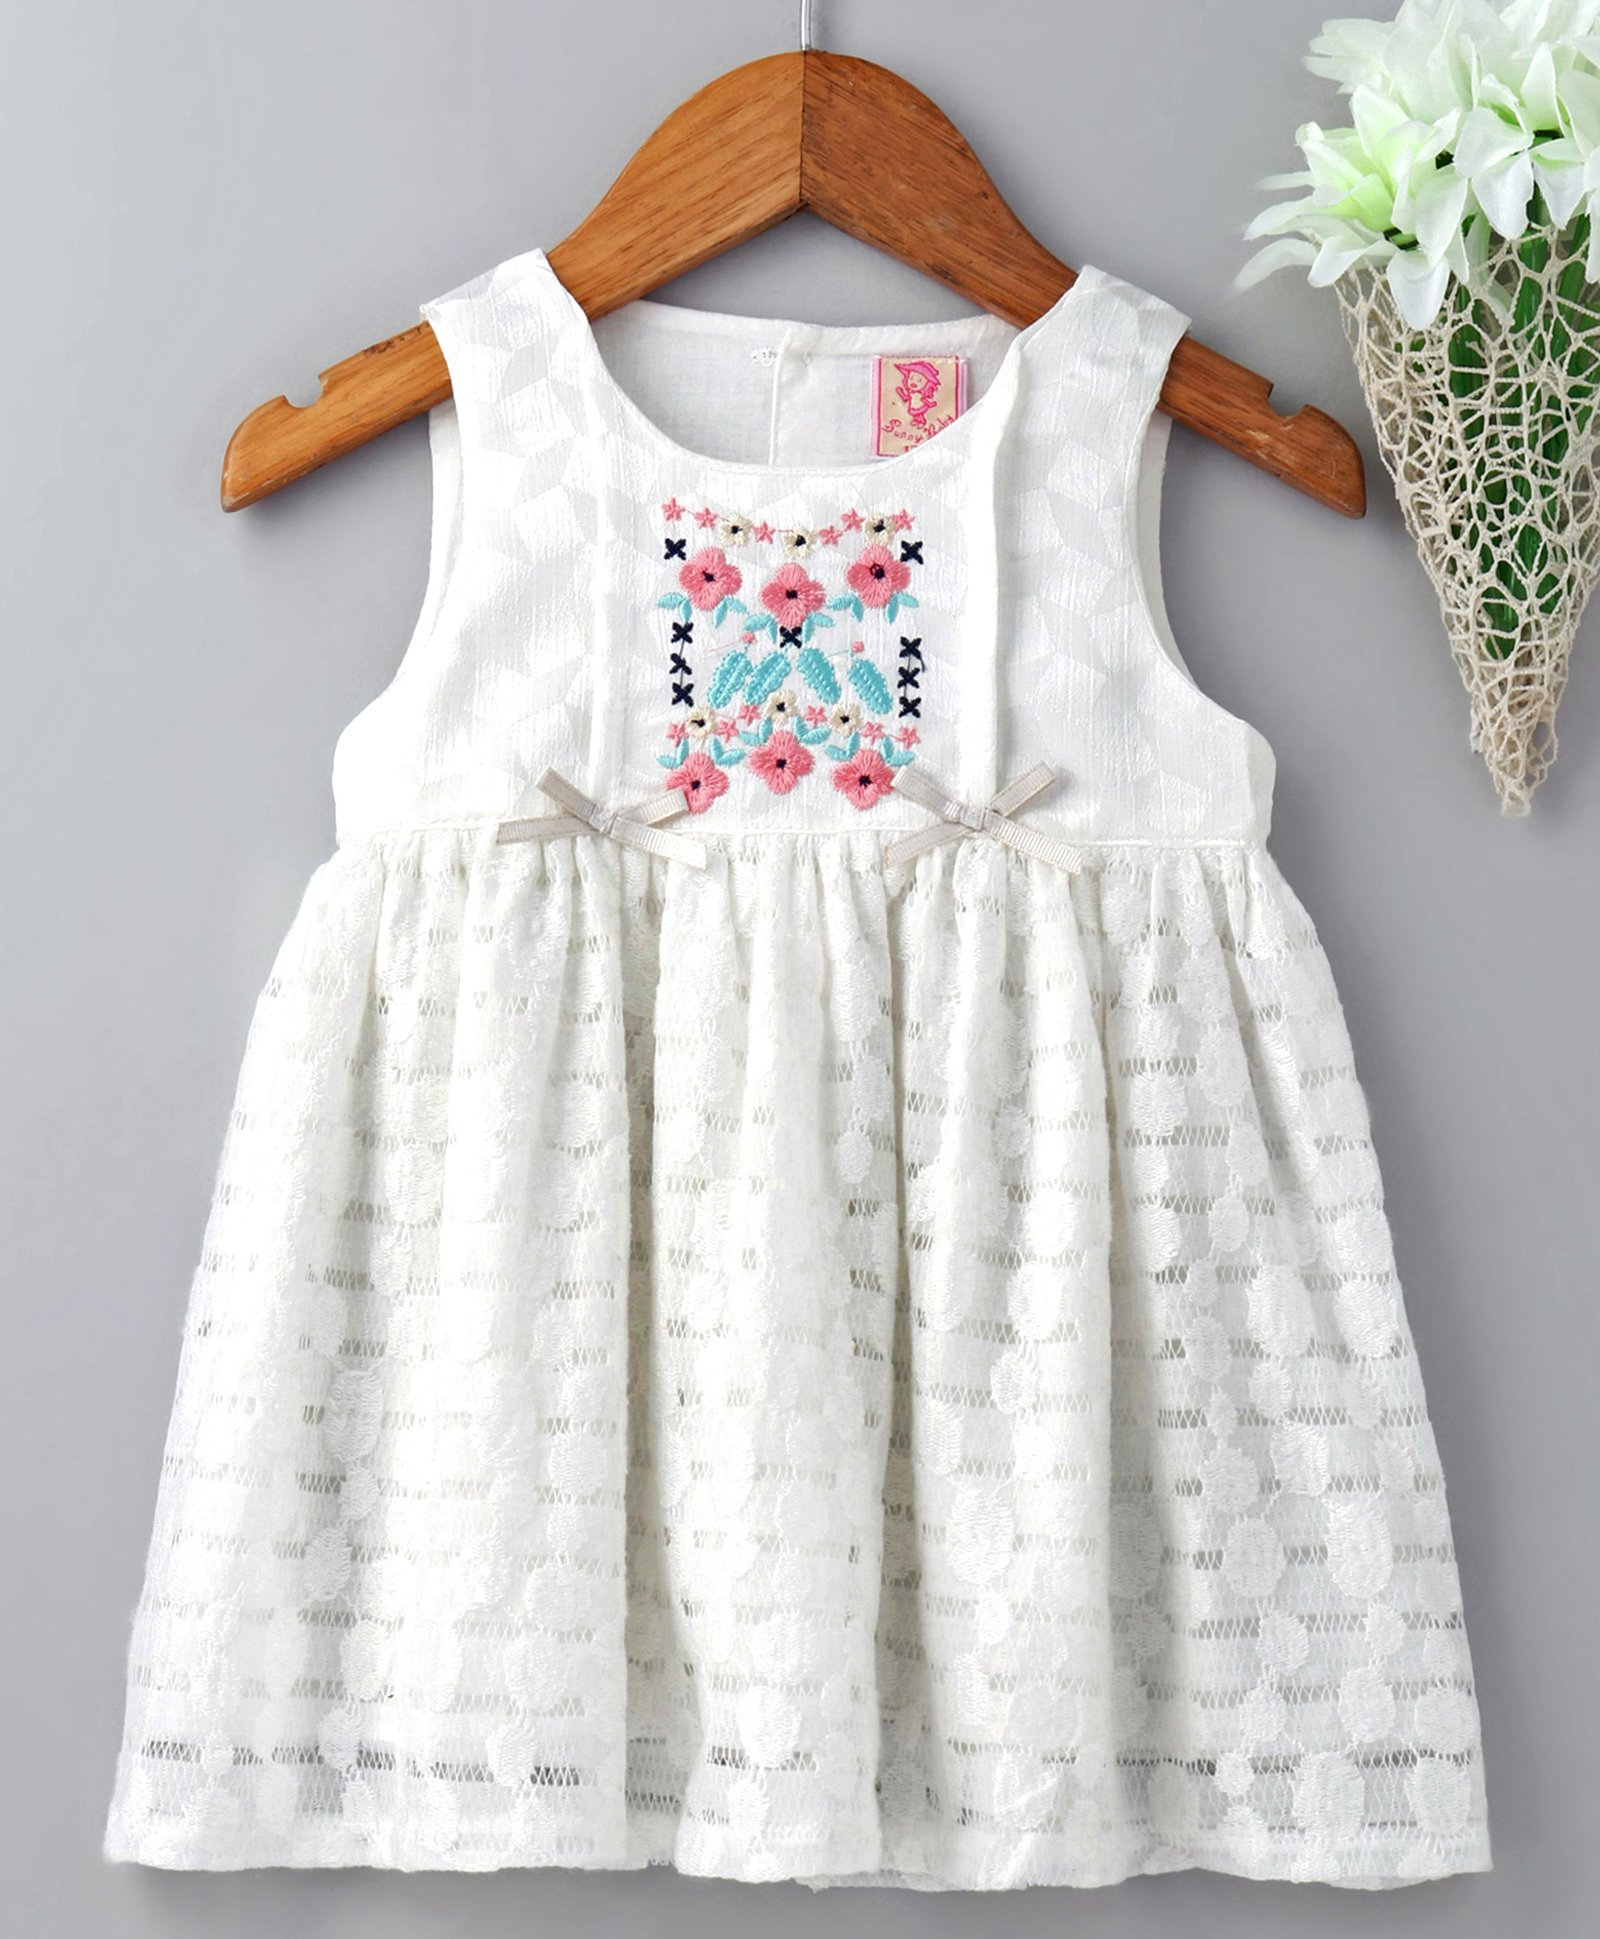 0a71b9a8f82c Buy Sunny Baby Sleeveless Embroidered Frock White for Girls (0-3 ...